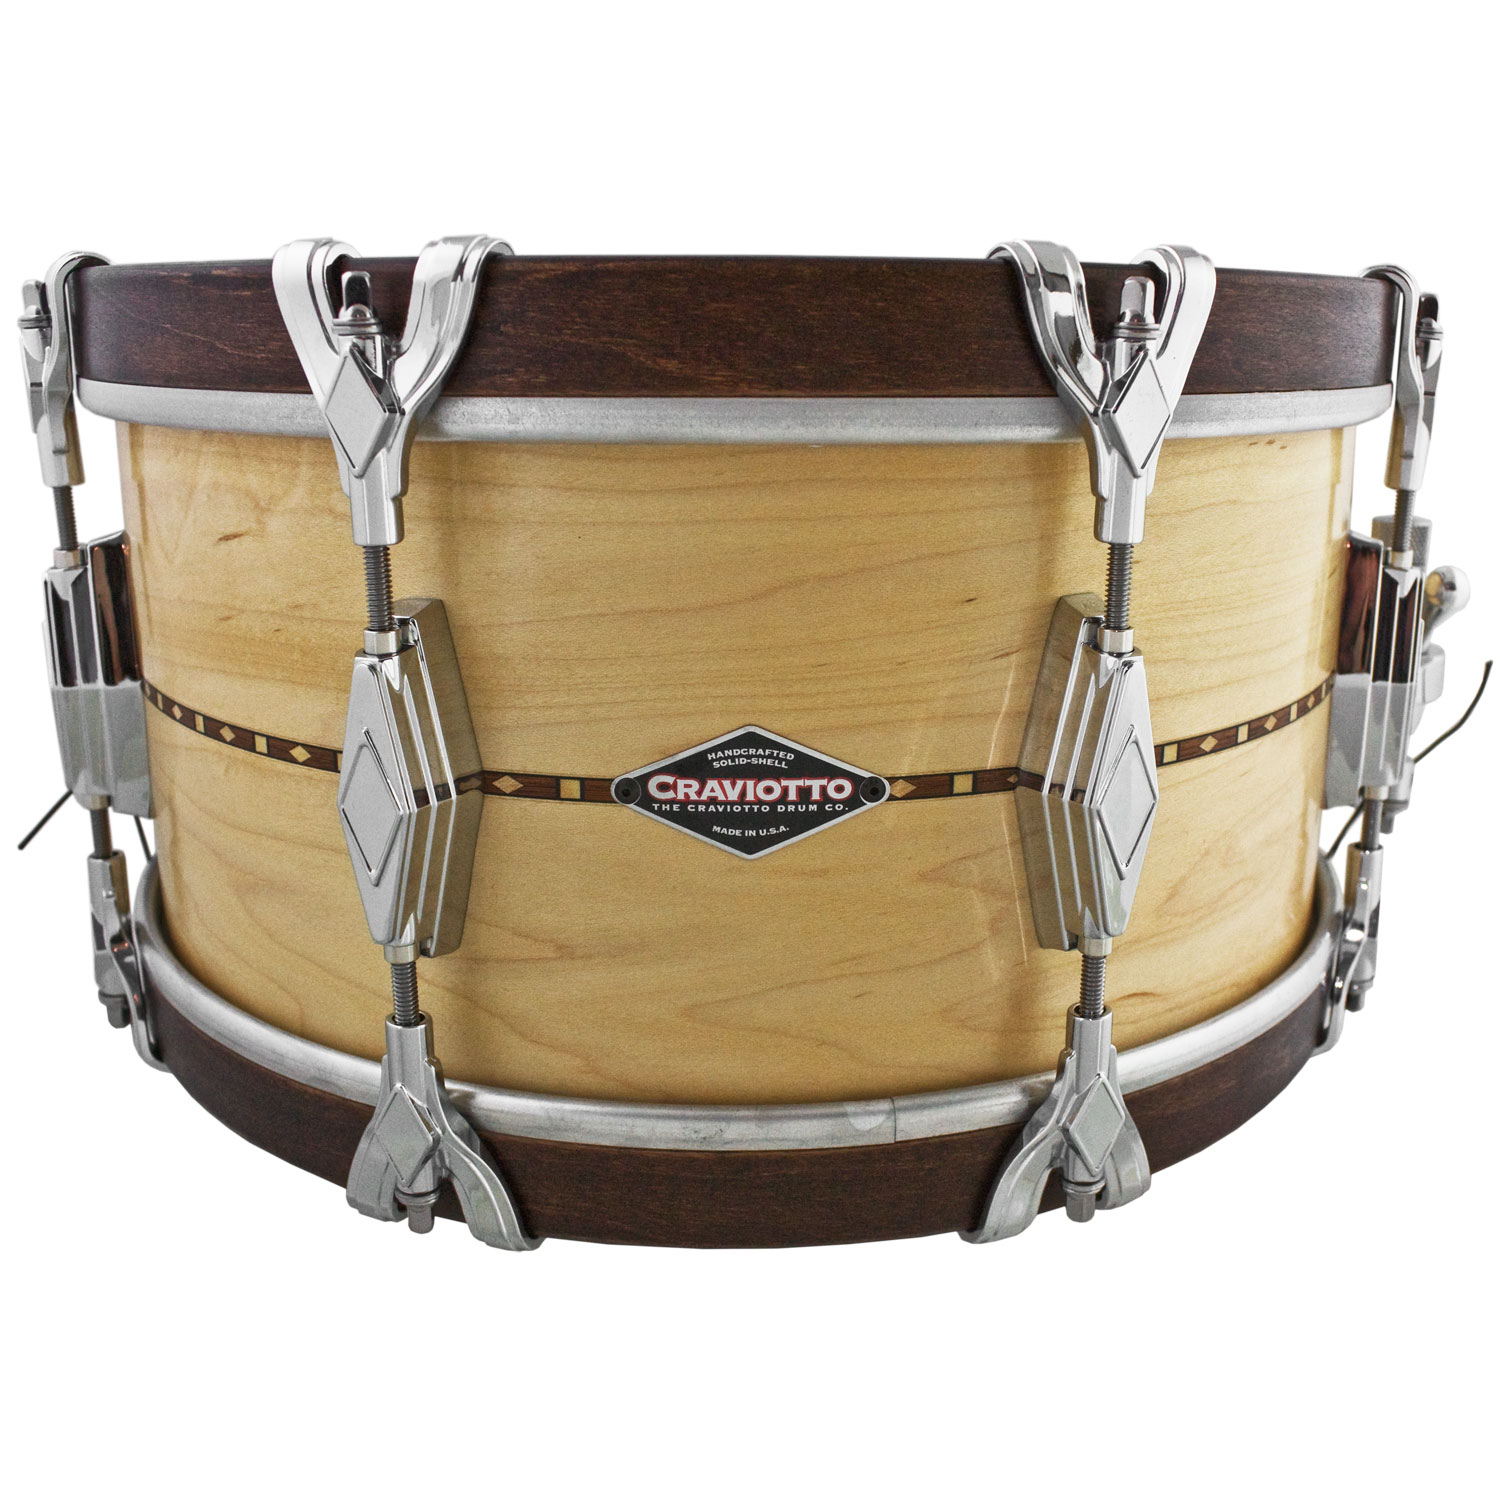 "Craviotto 7"" x 14"" Super Swing Solid Maple Snare Drum"